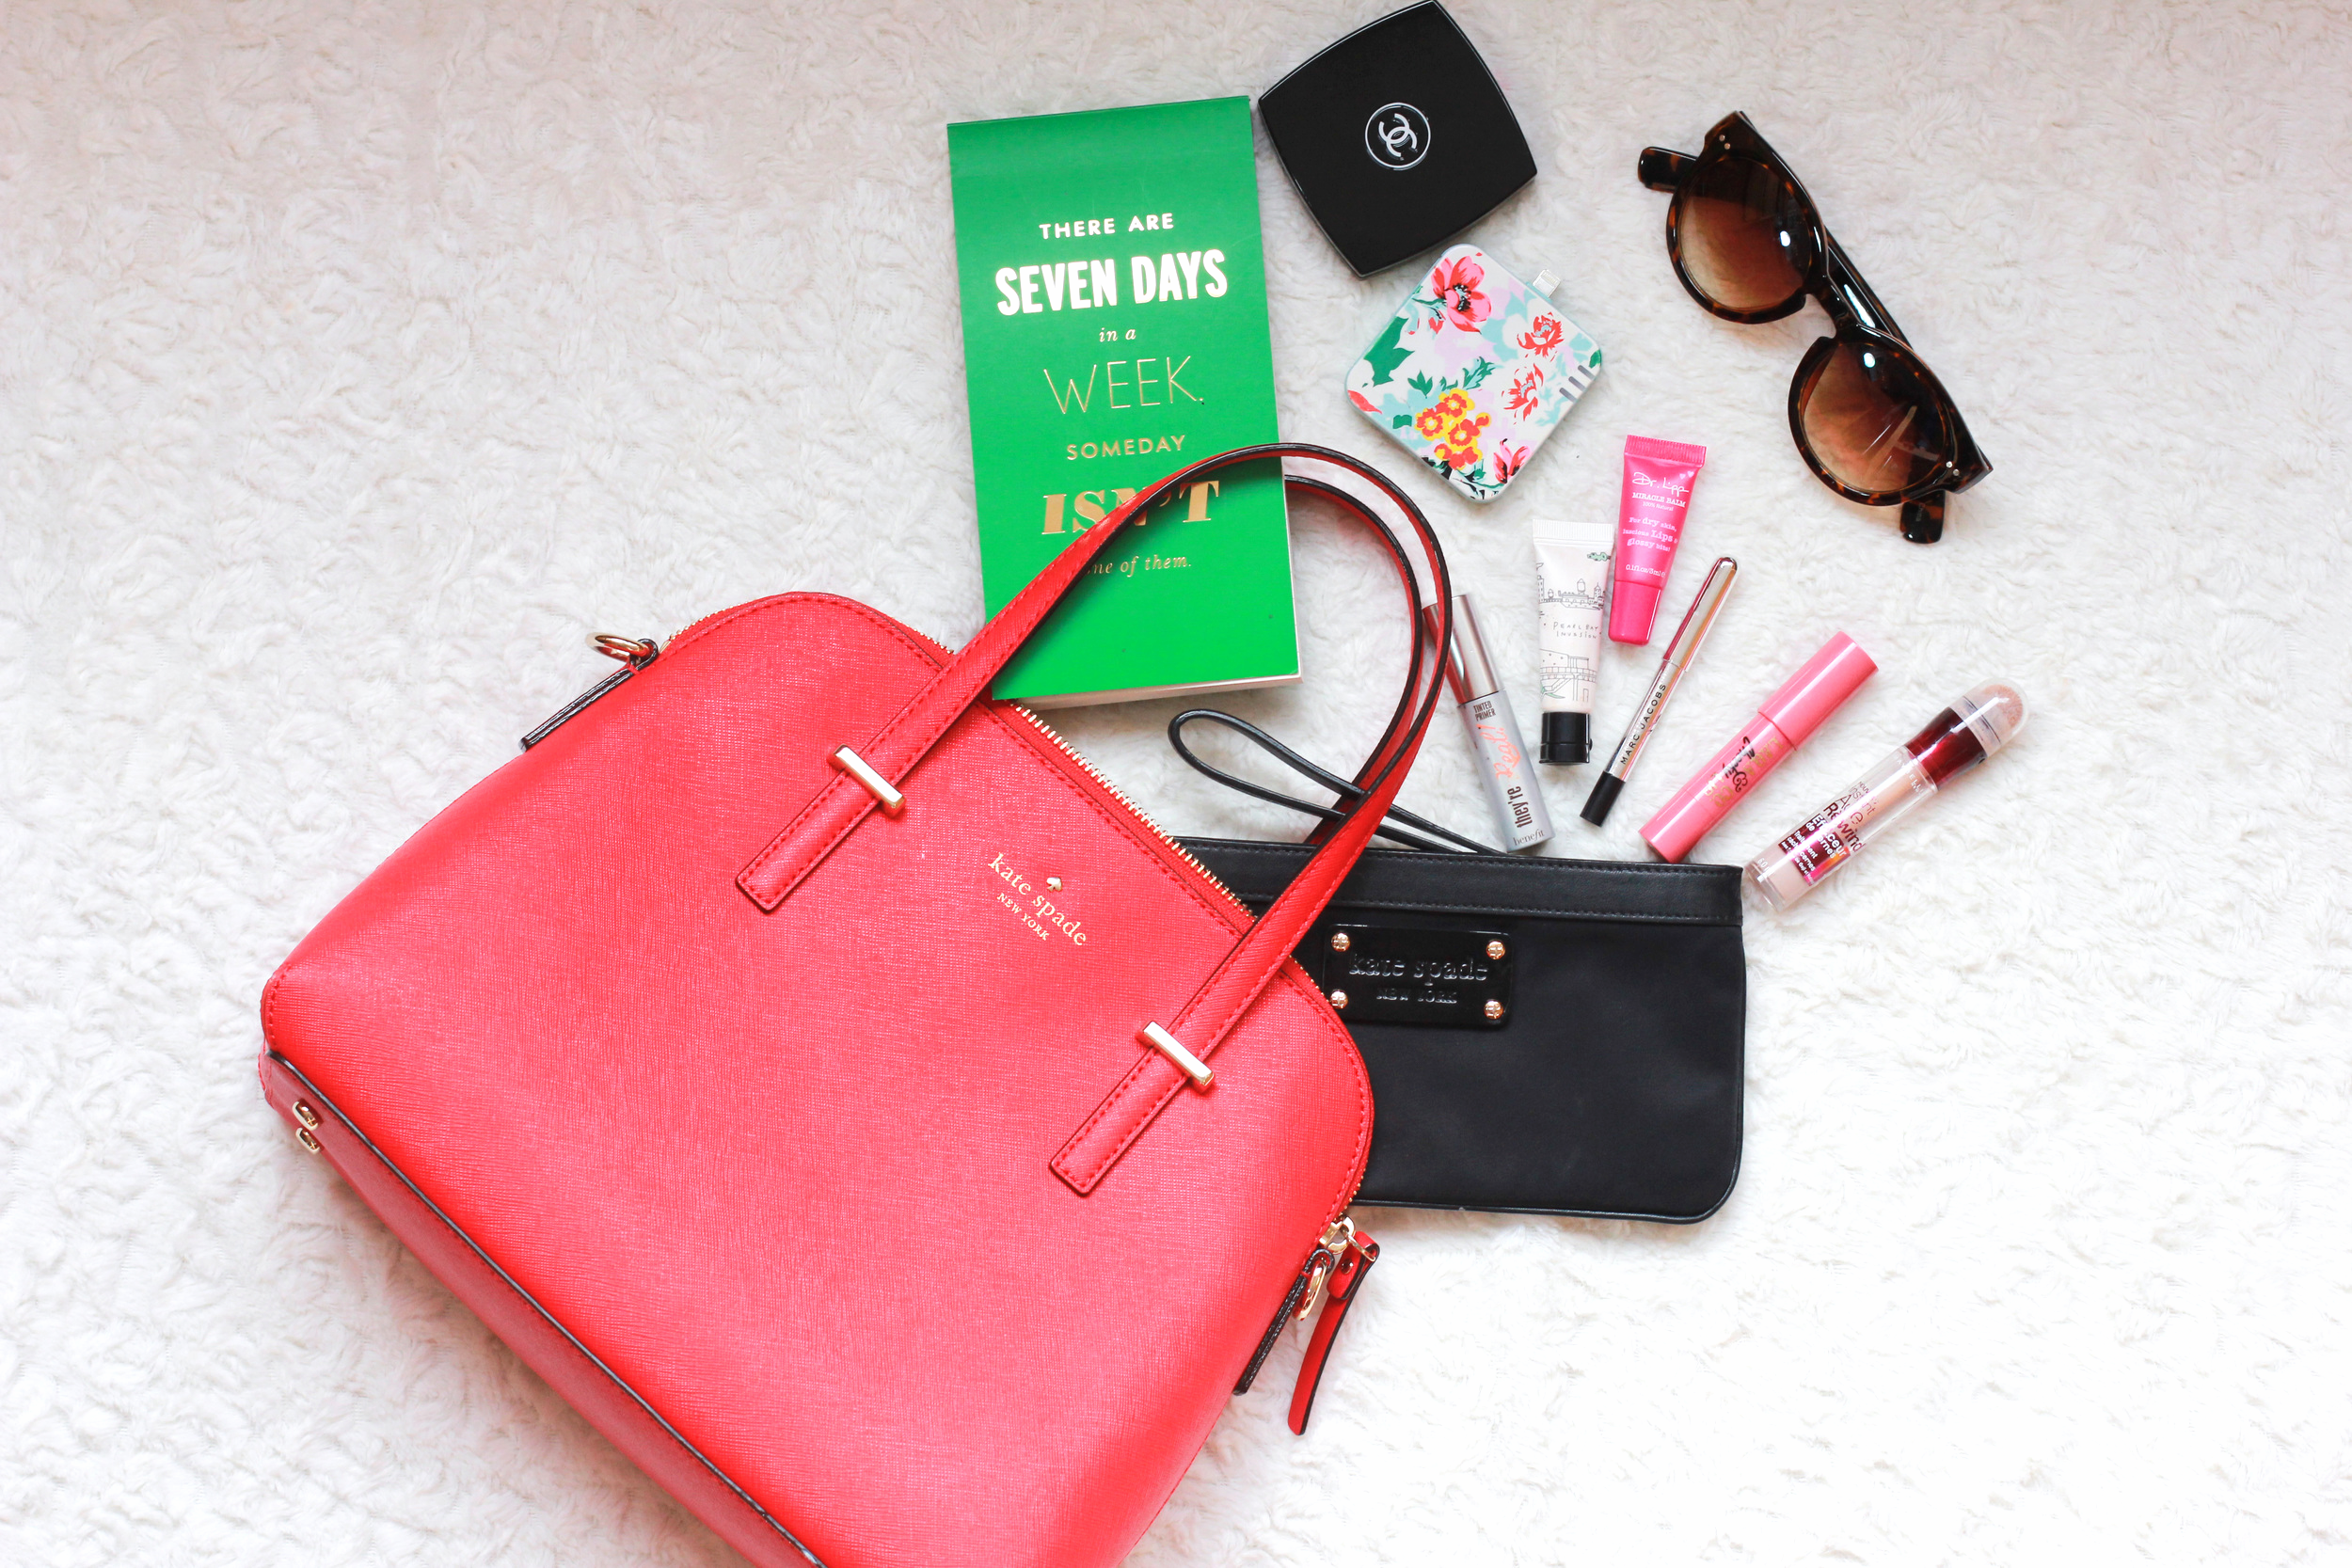 Kate Spade Cedar Street Maise - chanel powder compact, kate spade notebook, kate spade fabric wristlet, ban.do florabunda charger, LOFT sunglasses, Benefit tinted lash primer, Too cool for school highlighter, maybelline age rewind concealer, LAQA & Co cheek and lip stick, marc jacobs eye liner, Dr. Lipp miracle balm